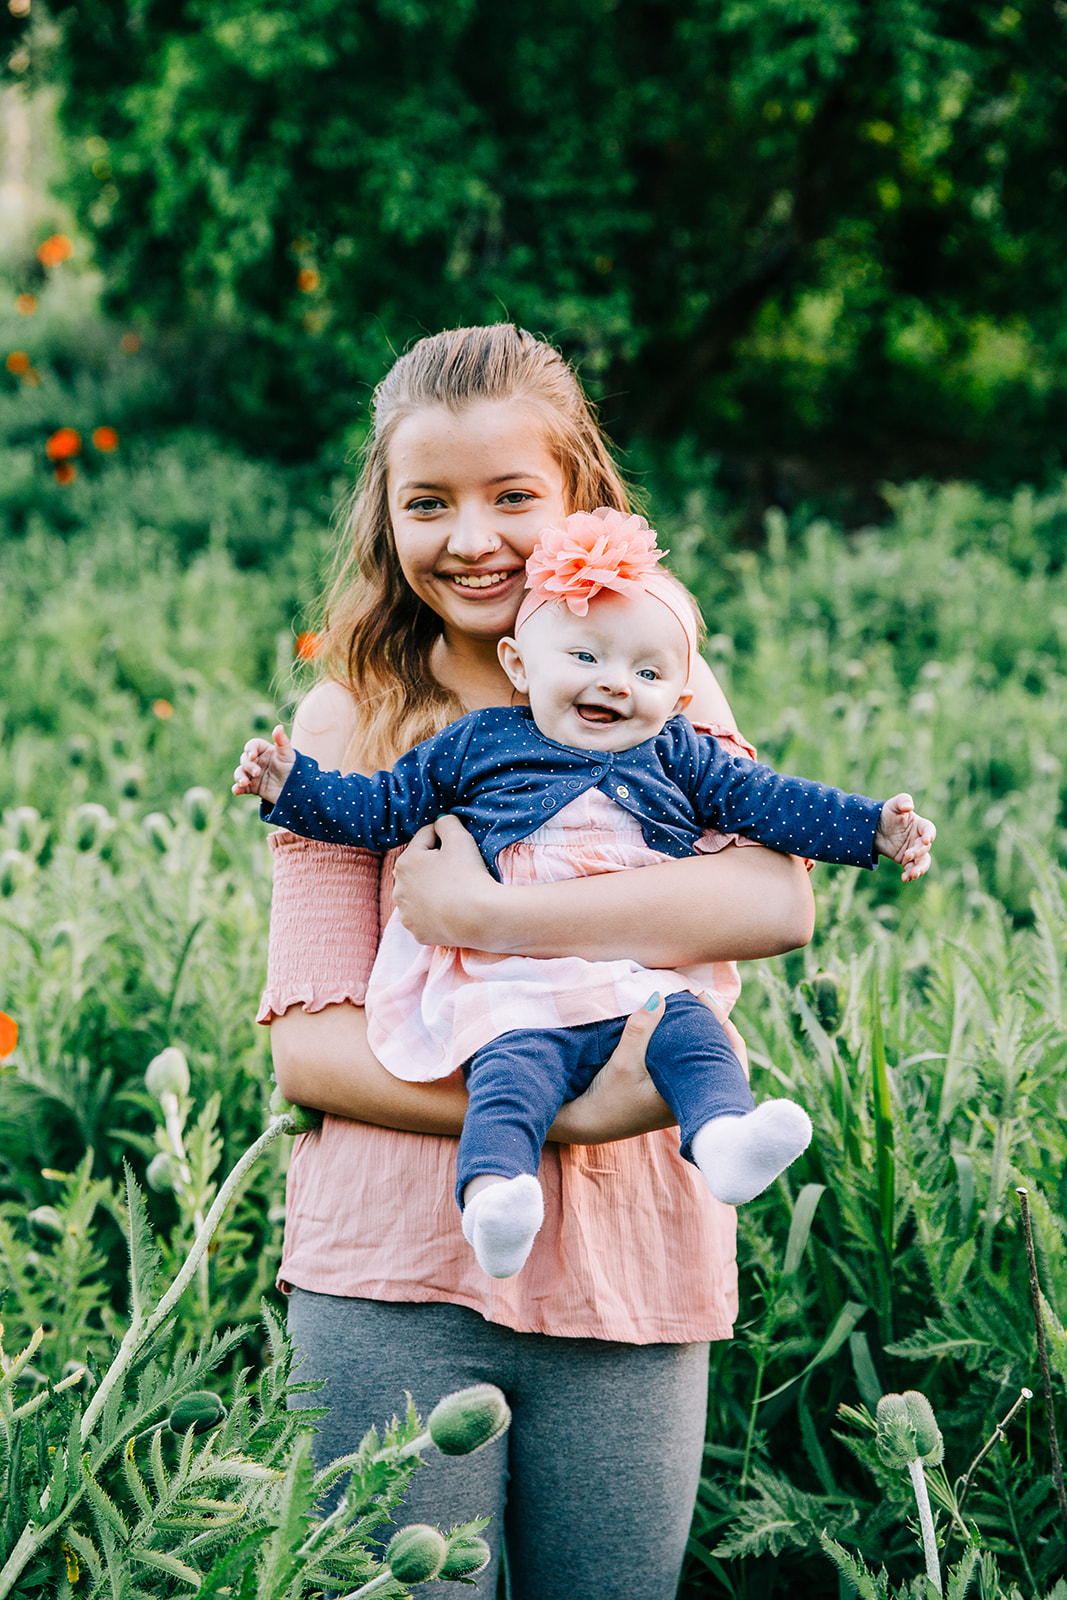 Family pictures you'll want to hang all over your home! Bella Alder Photography is a professional family photographer serving families all over northern Utah and available for travel! #bellaalderphoto #familyphotog #familyphotography #familypictures #familyphotos #outfitinspo #familyoutfits #poppyfields #northernutahfamilyphotographer #utahfamilyphotographer #cachevalleyfamilyphotographer